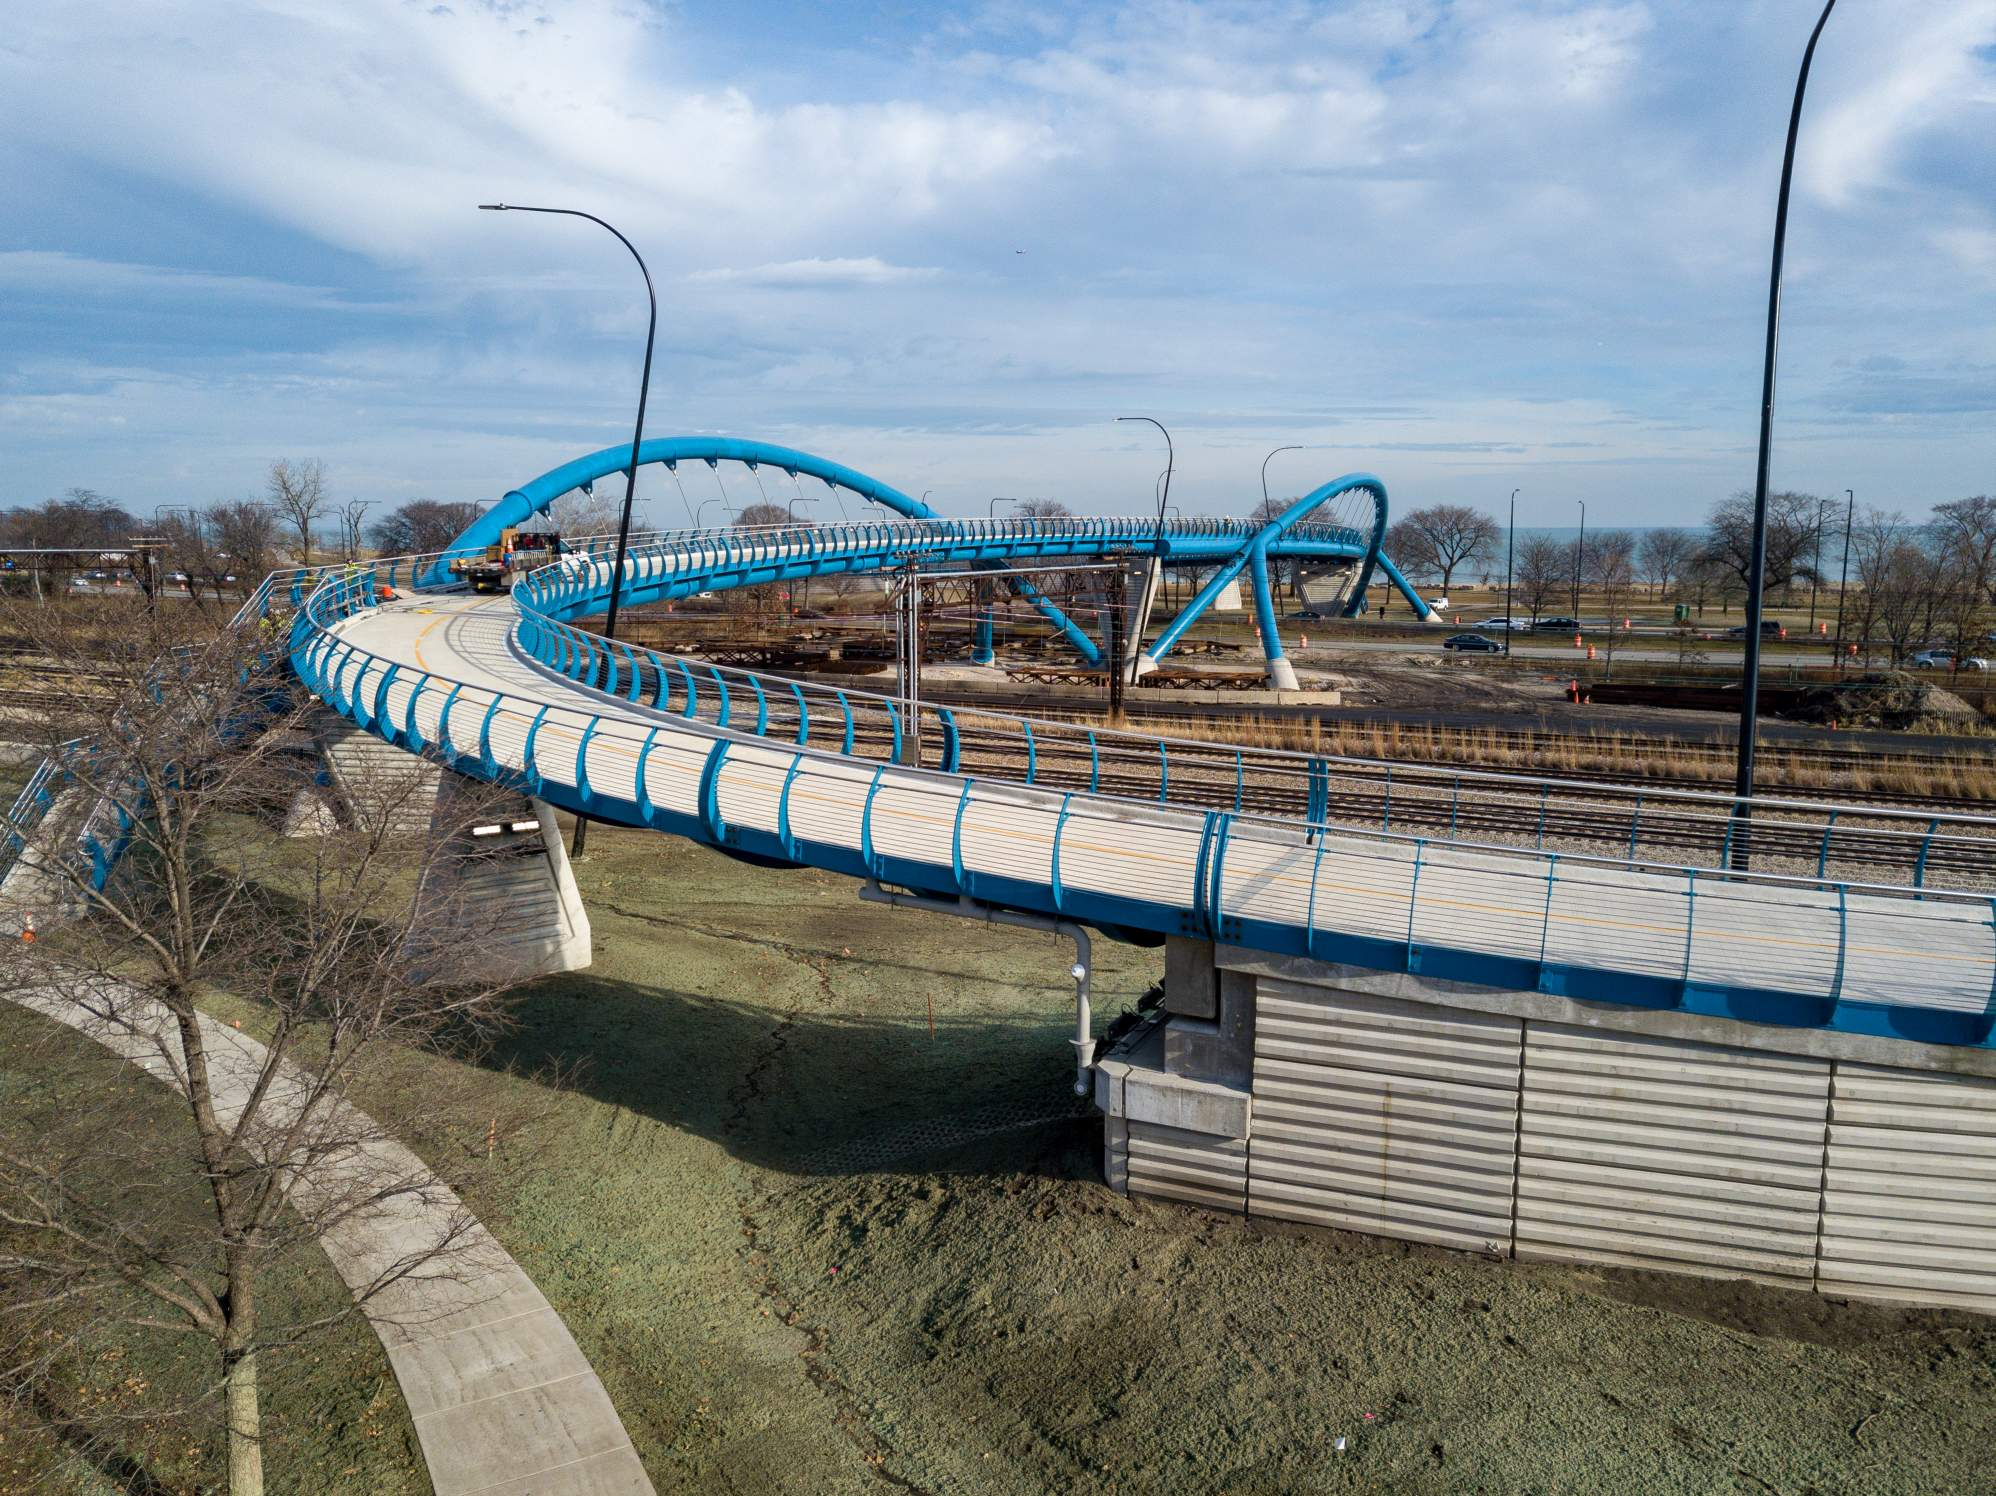 41st Street Steel Arch Pedestrian Bridge in Chicago wins 2019 Excellence in Structural Engineering Awards from the national council of structural engineers associations